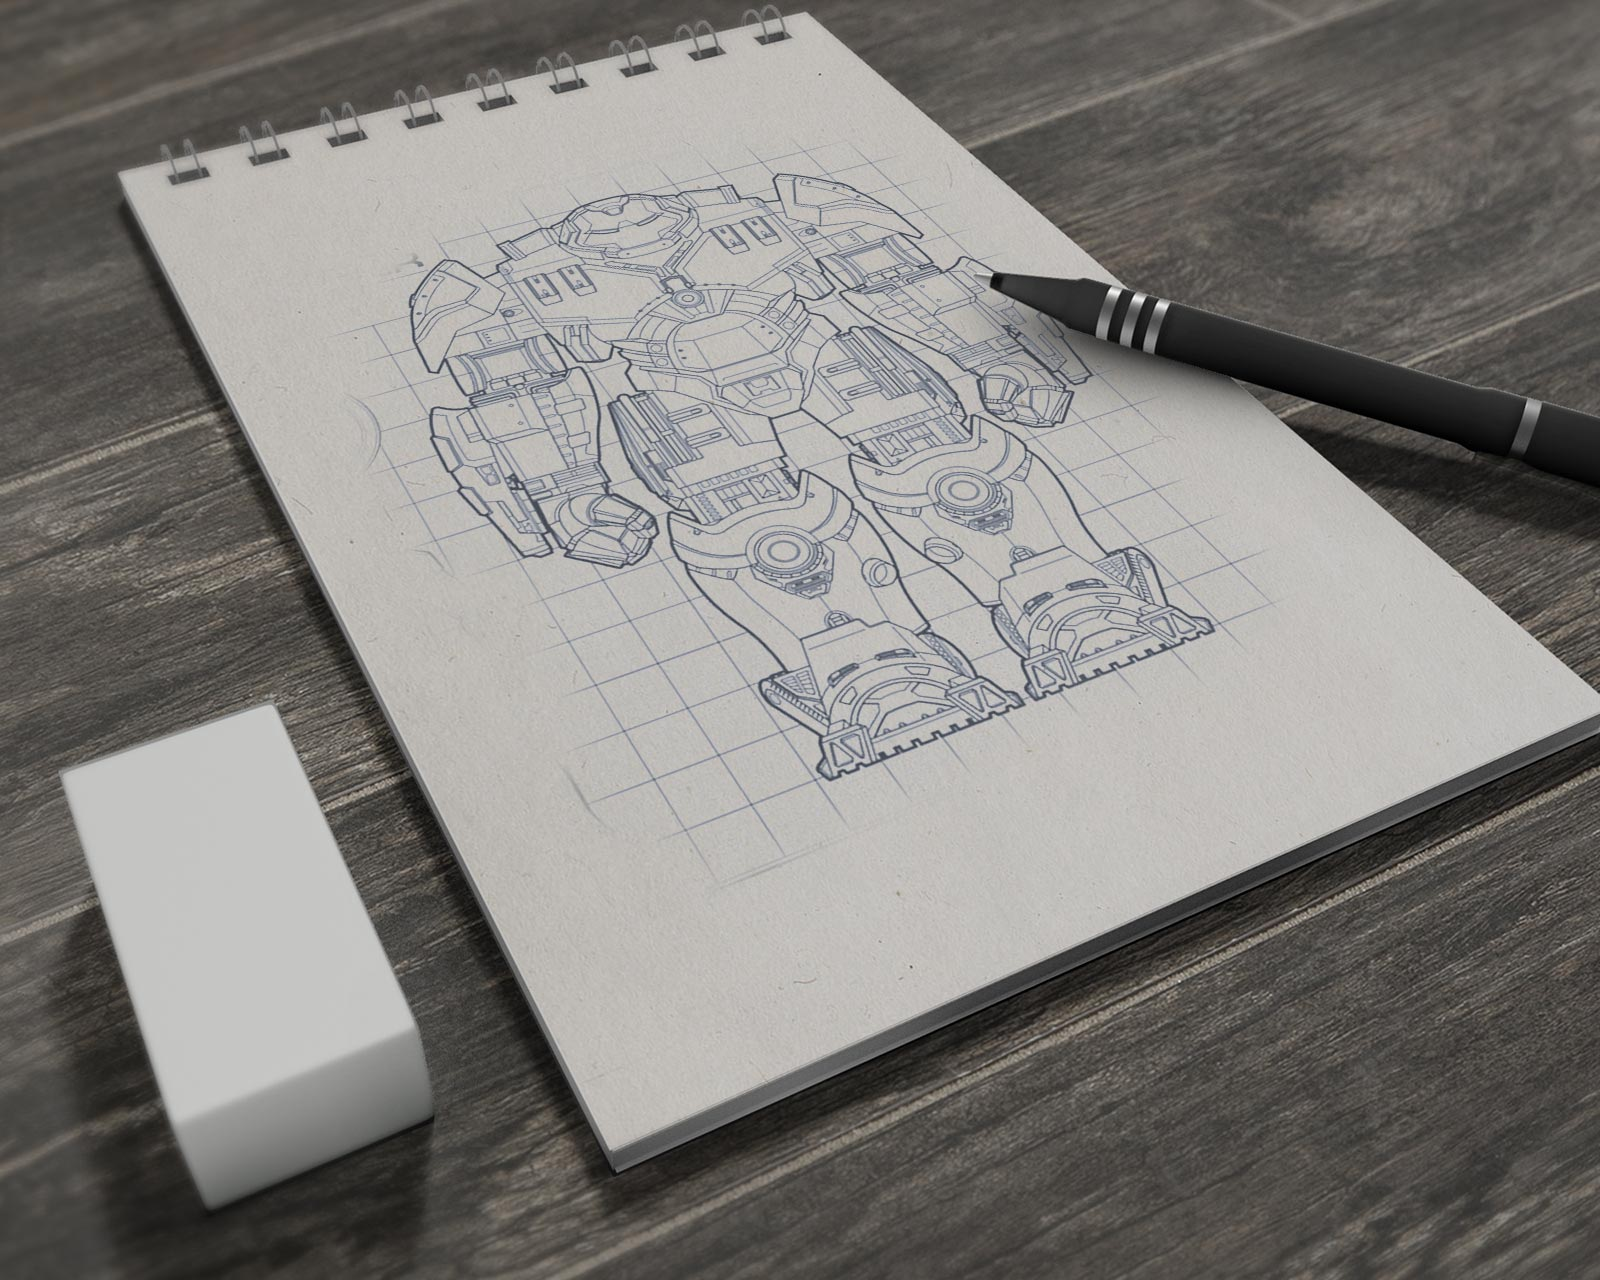 Free-Illustrations-Sketch-Book-Mockup-PSD